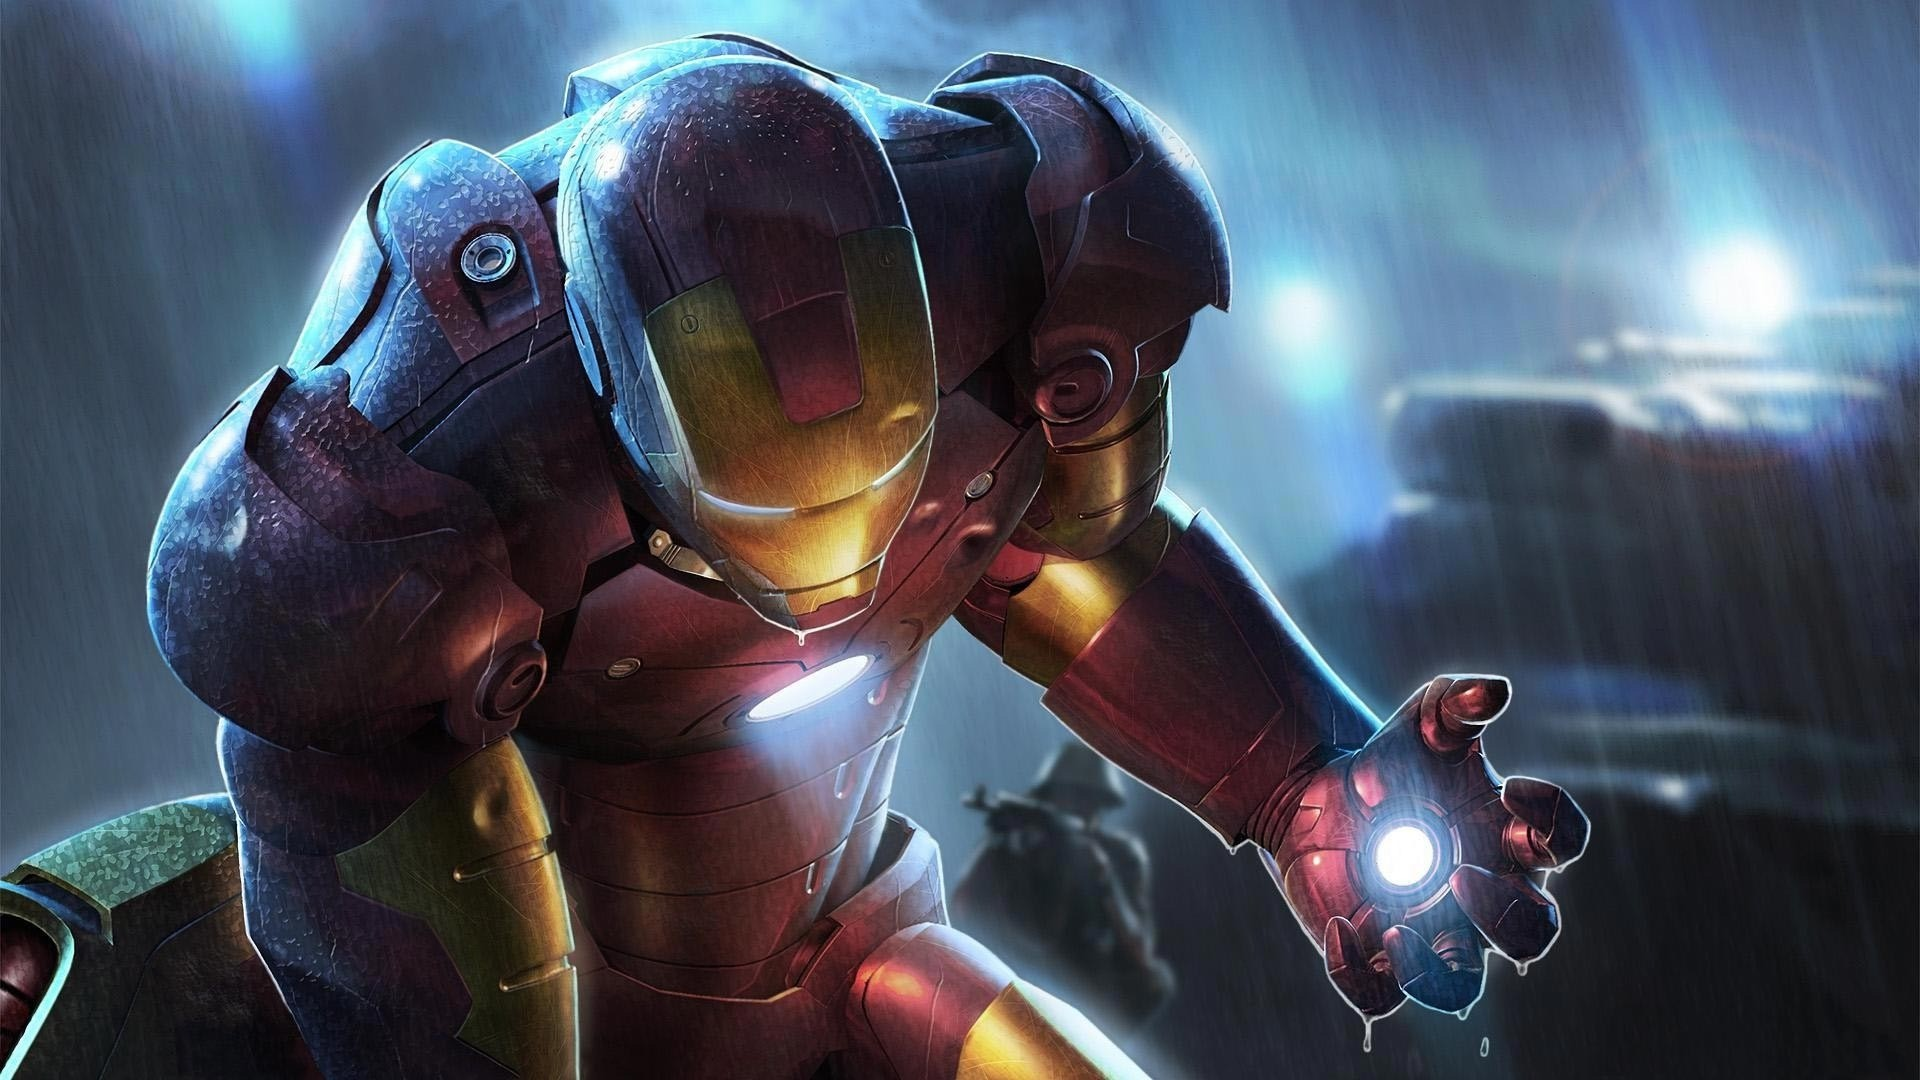 Res: 1920x1080, Iron Man Wallpaper For Android Hd